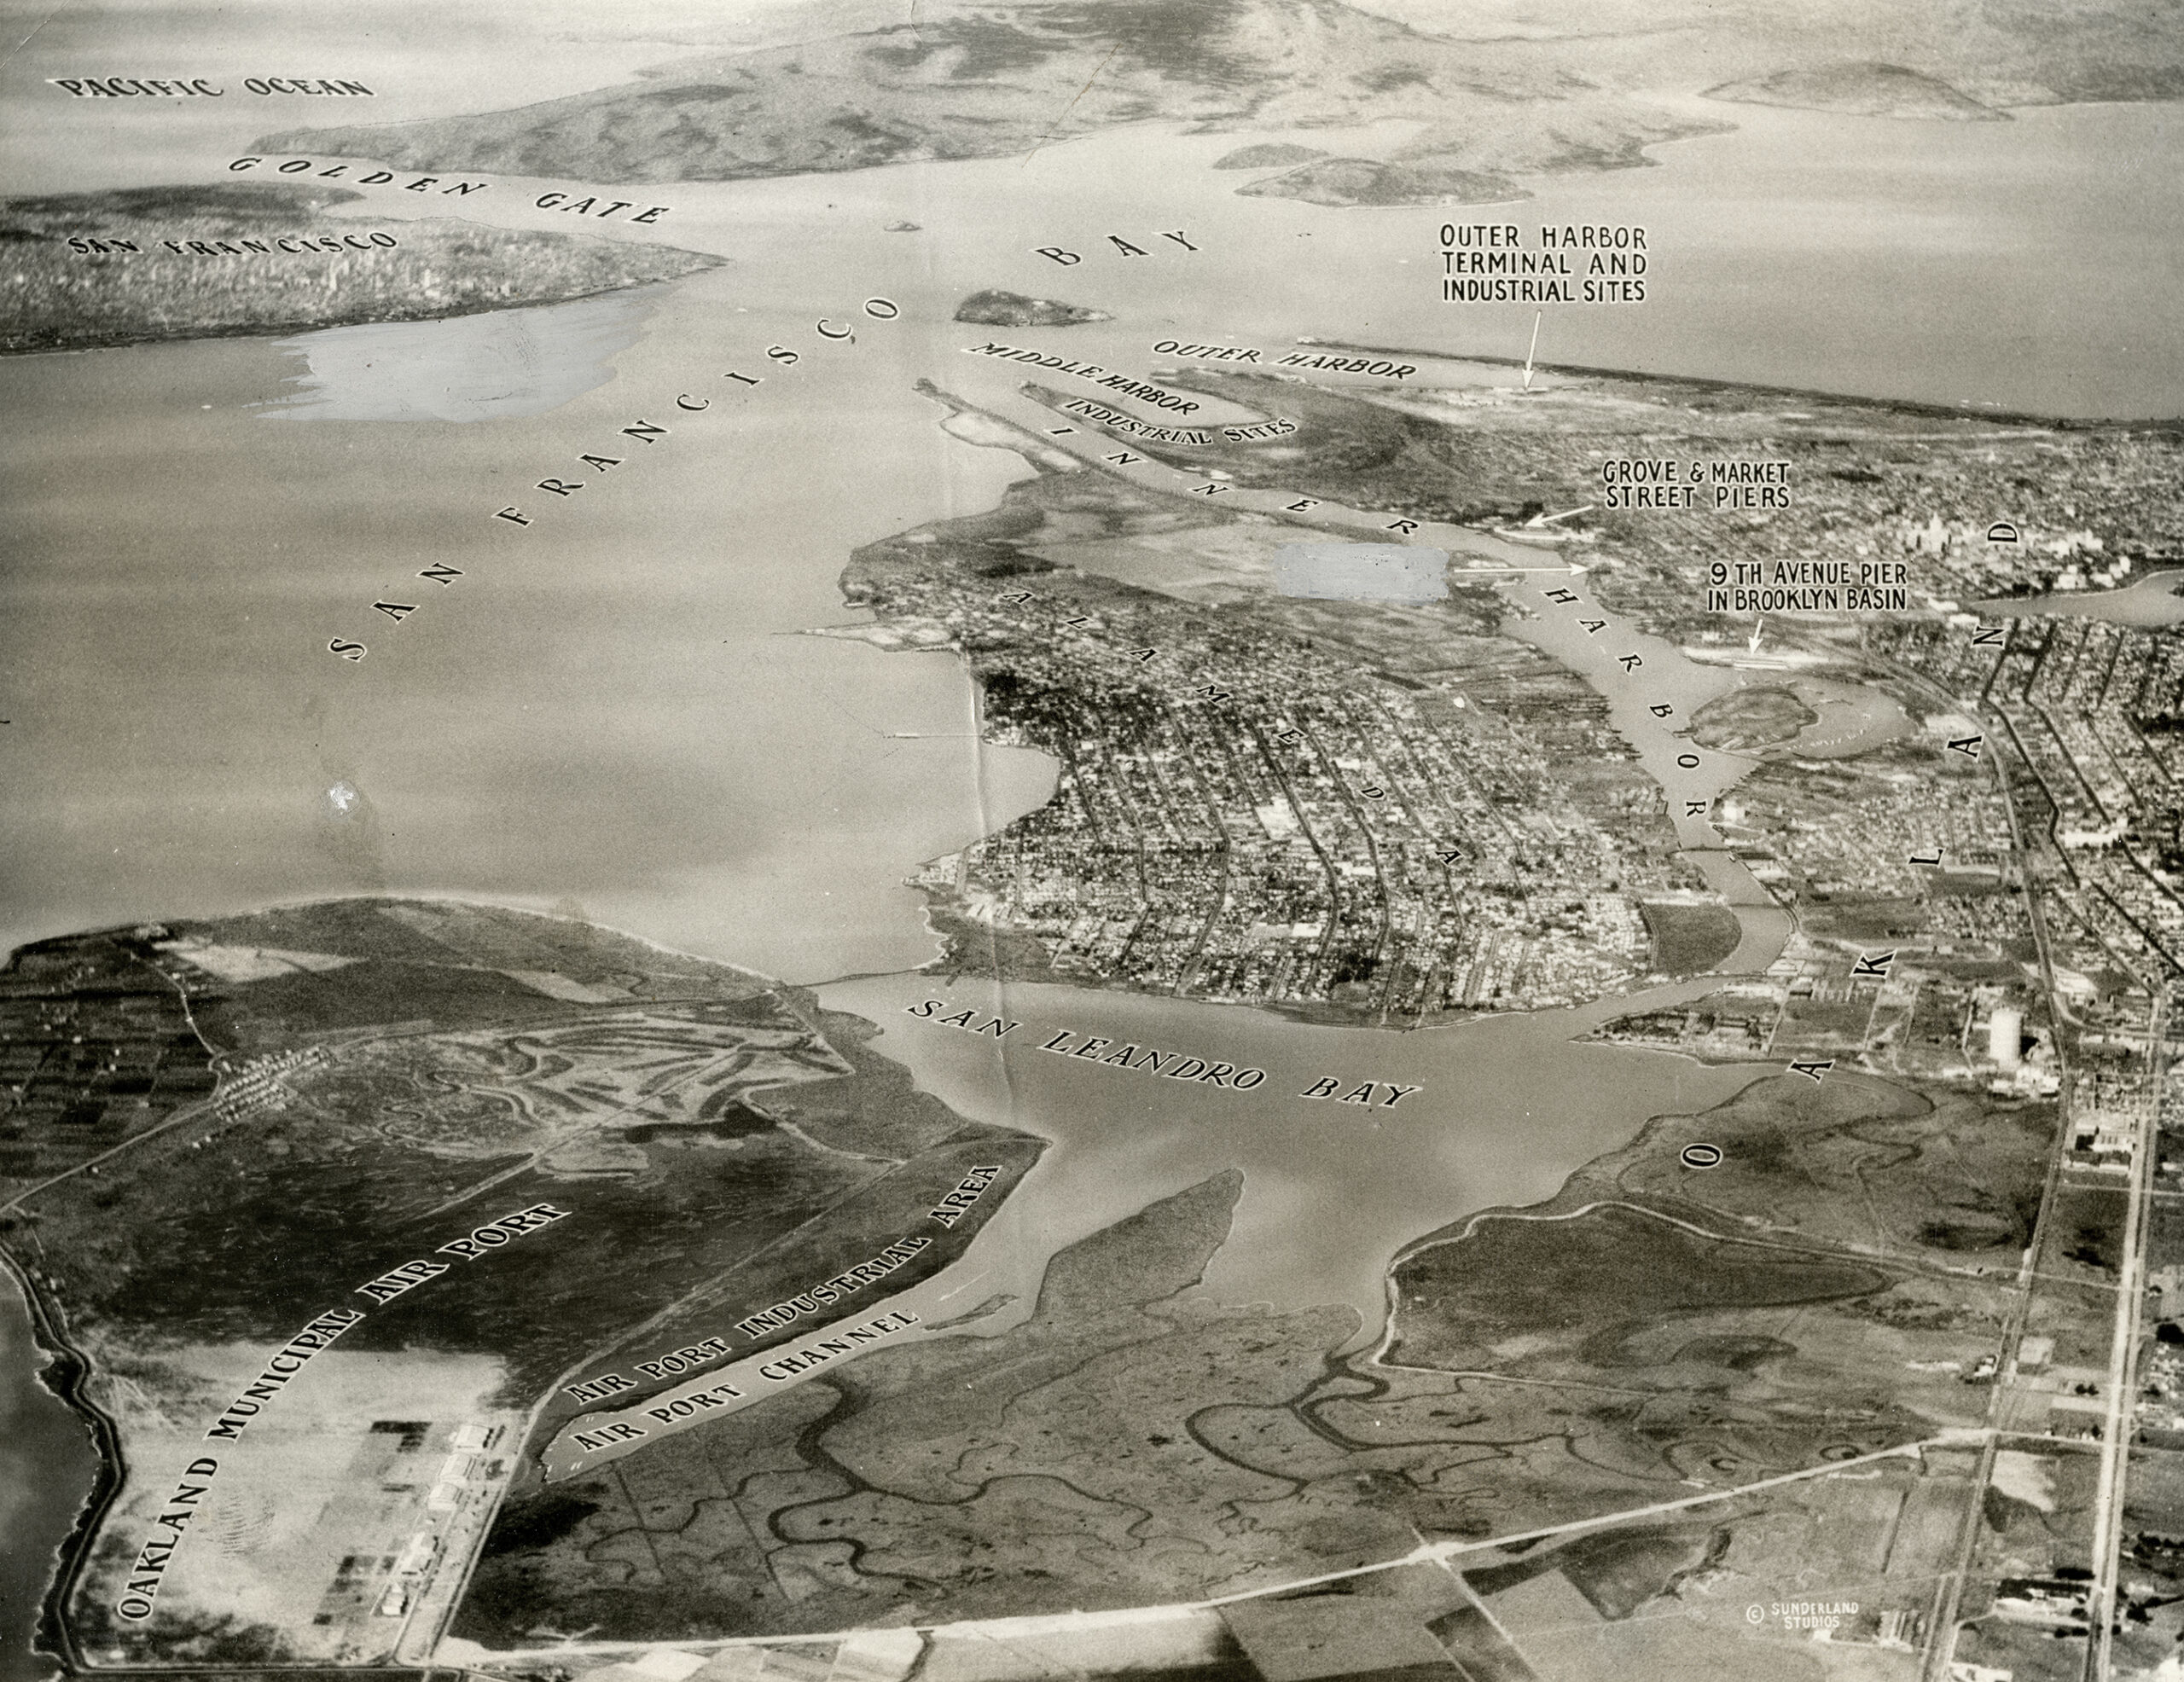 Alameda and Oakland, showing Oakland Airport and San Leandro Bay in foreground, 1930.